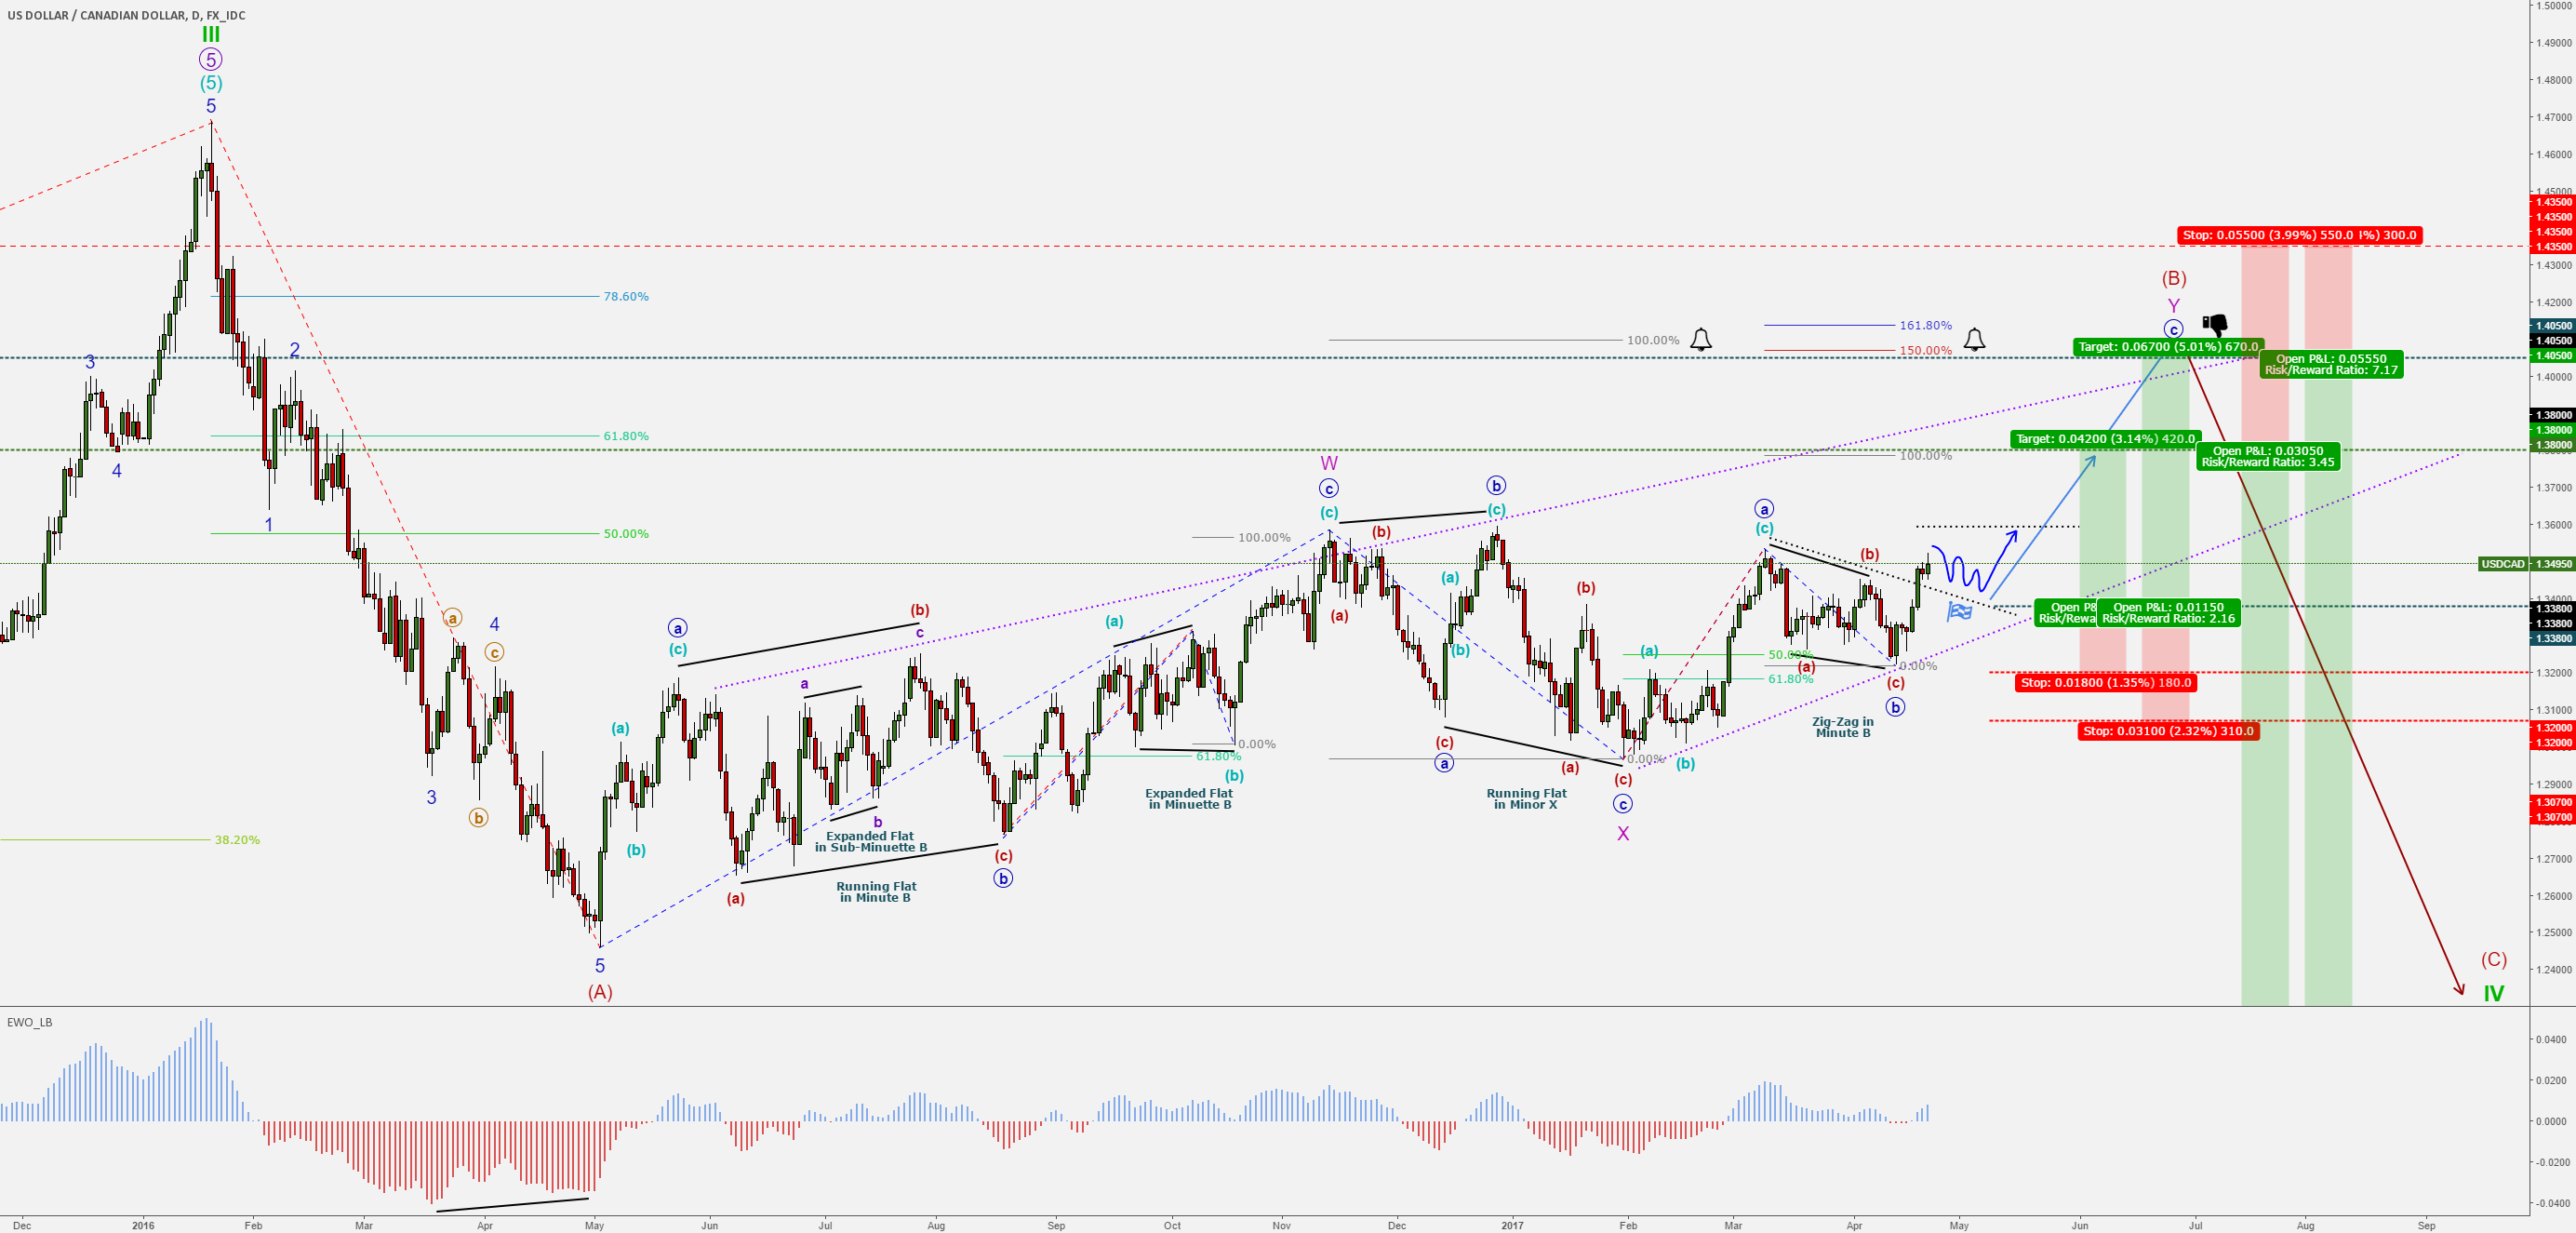 USD/CAD (dollar/loonie) - EW - Long Term Forecast - BUY & SELL